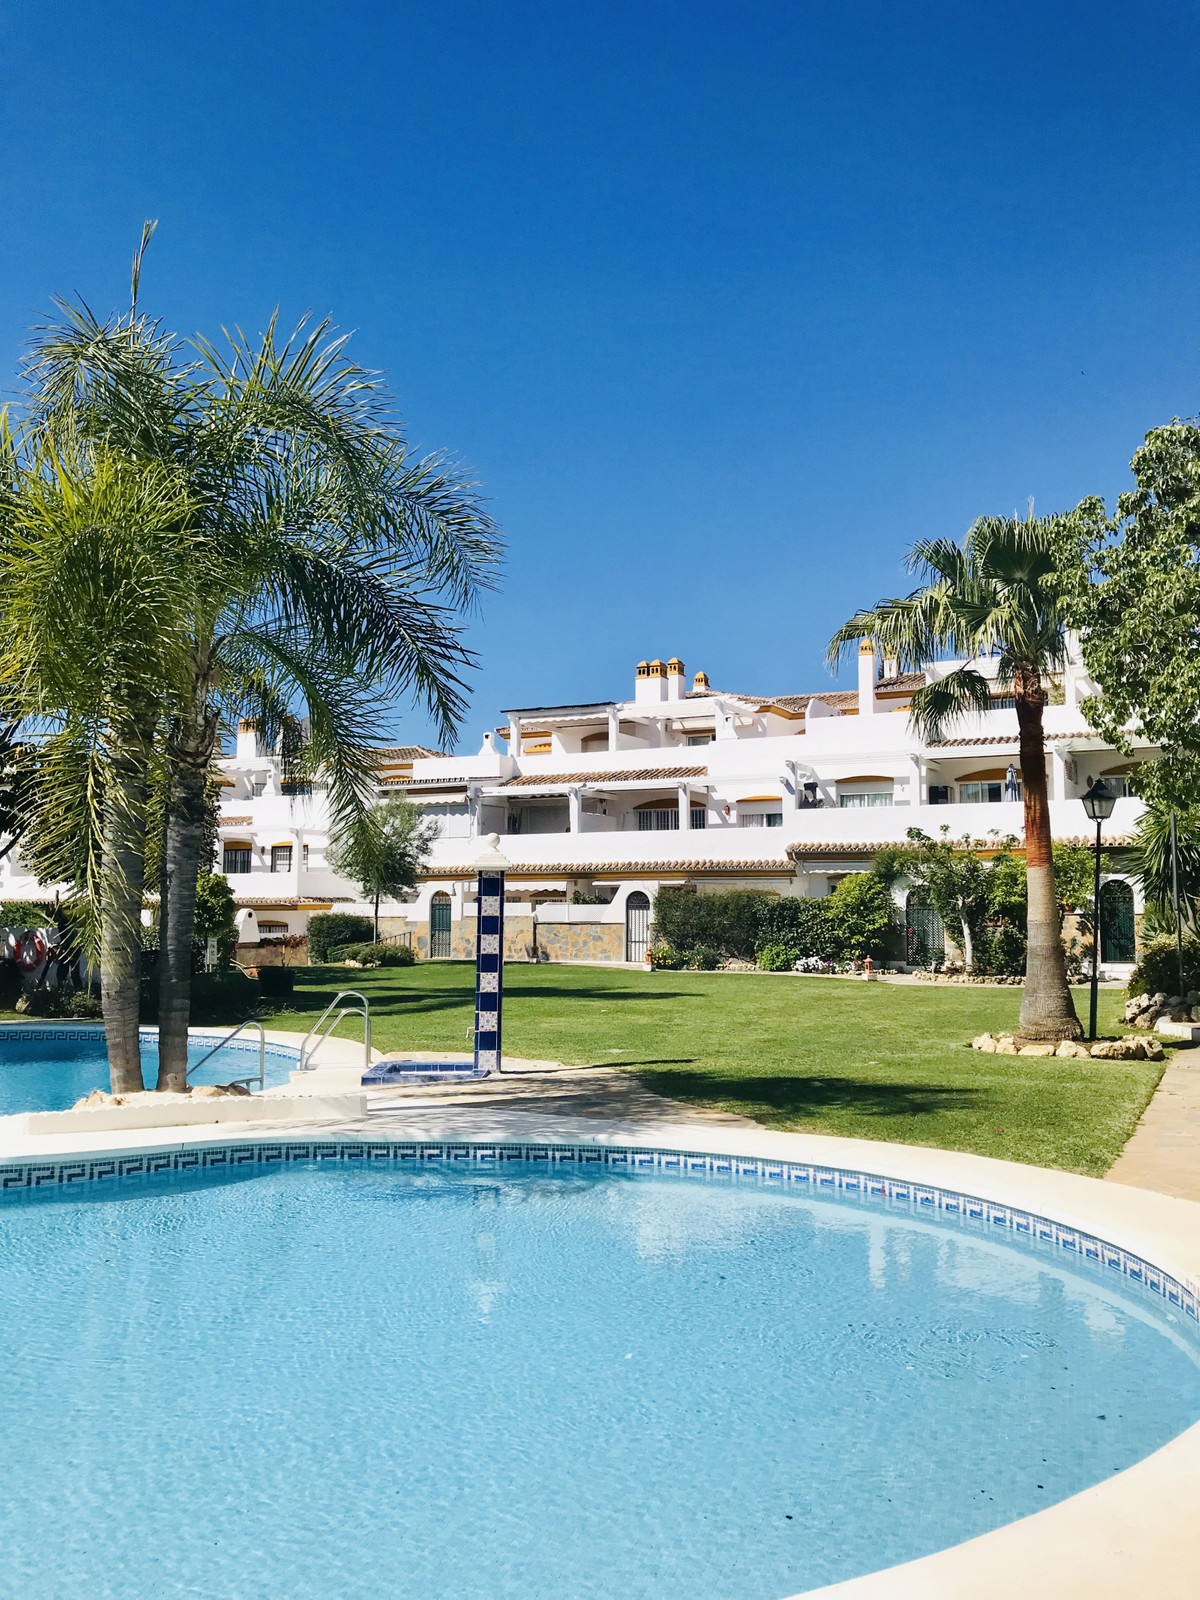 Lovely 3 bedroom Duplex penthouse property for sale in a great location right in the centre of Marbe, Spain